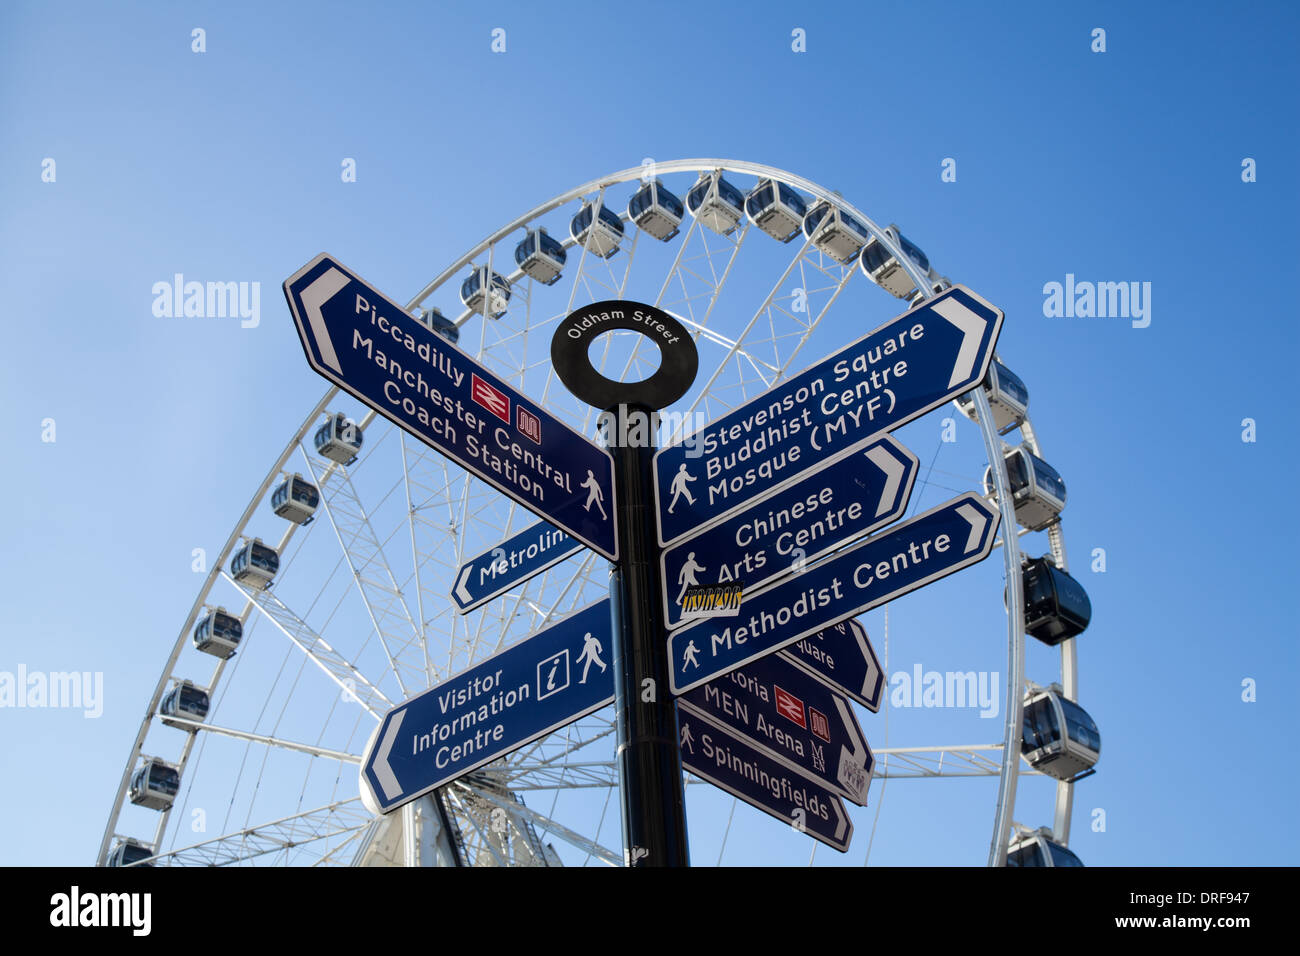 Street sign with different destinations. Locations & Directions,  Oldham Street Multi-Directional_ Piccadilly Tourist Signpost and the Big Ferris Whe - Stock Image